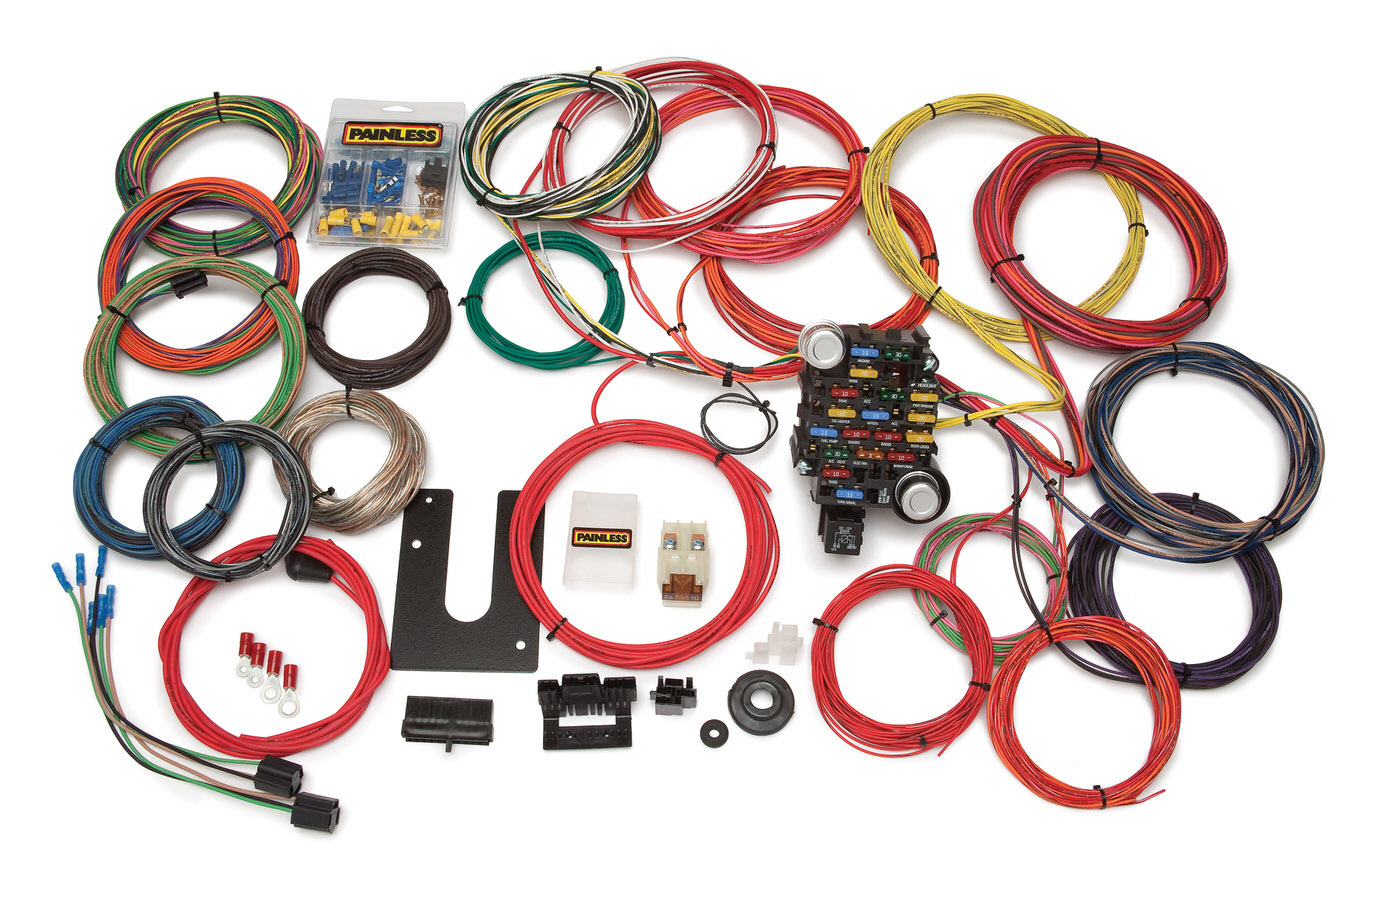 Painless Wiring 10102 Car Wiring Harness  Classic Customizable  Complete  21 Circuit  Complete